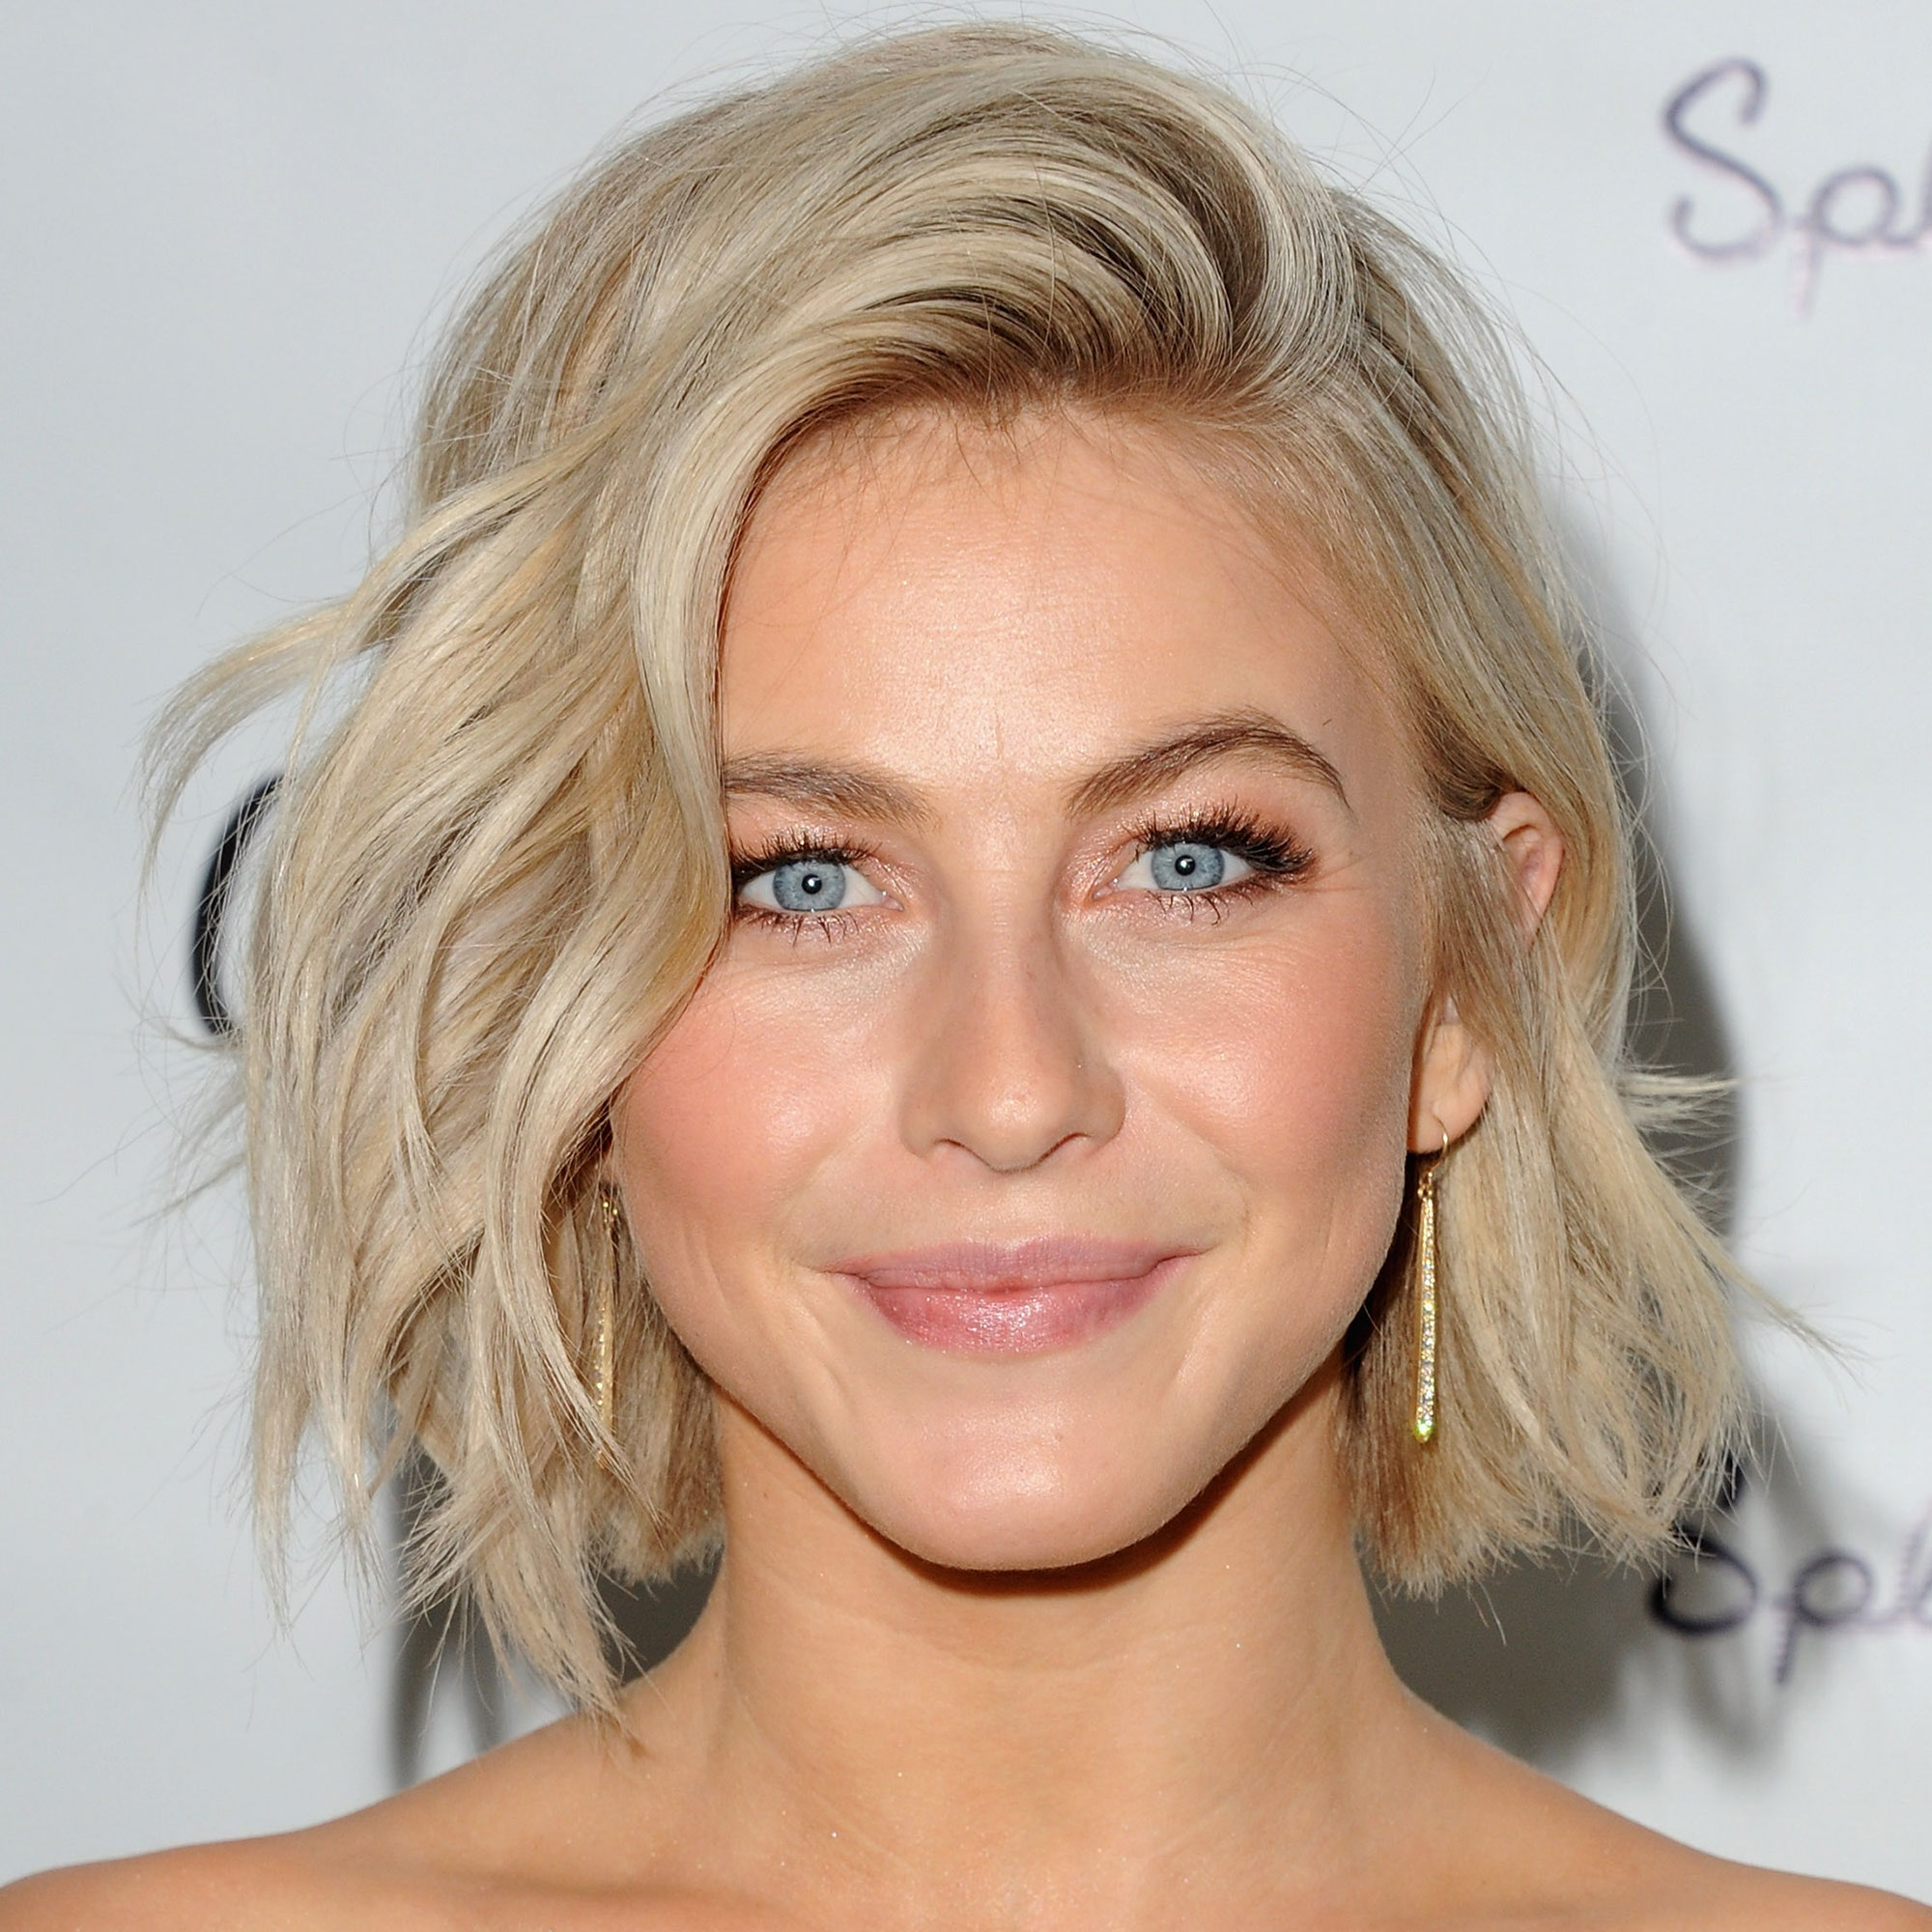 Julianne Hough Beautiful Wallpaper